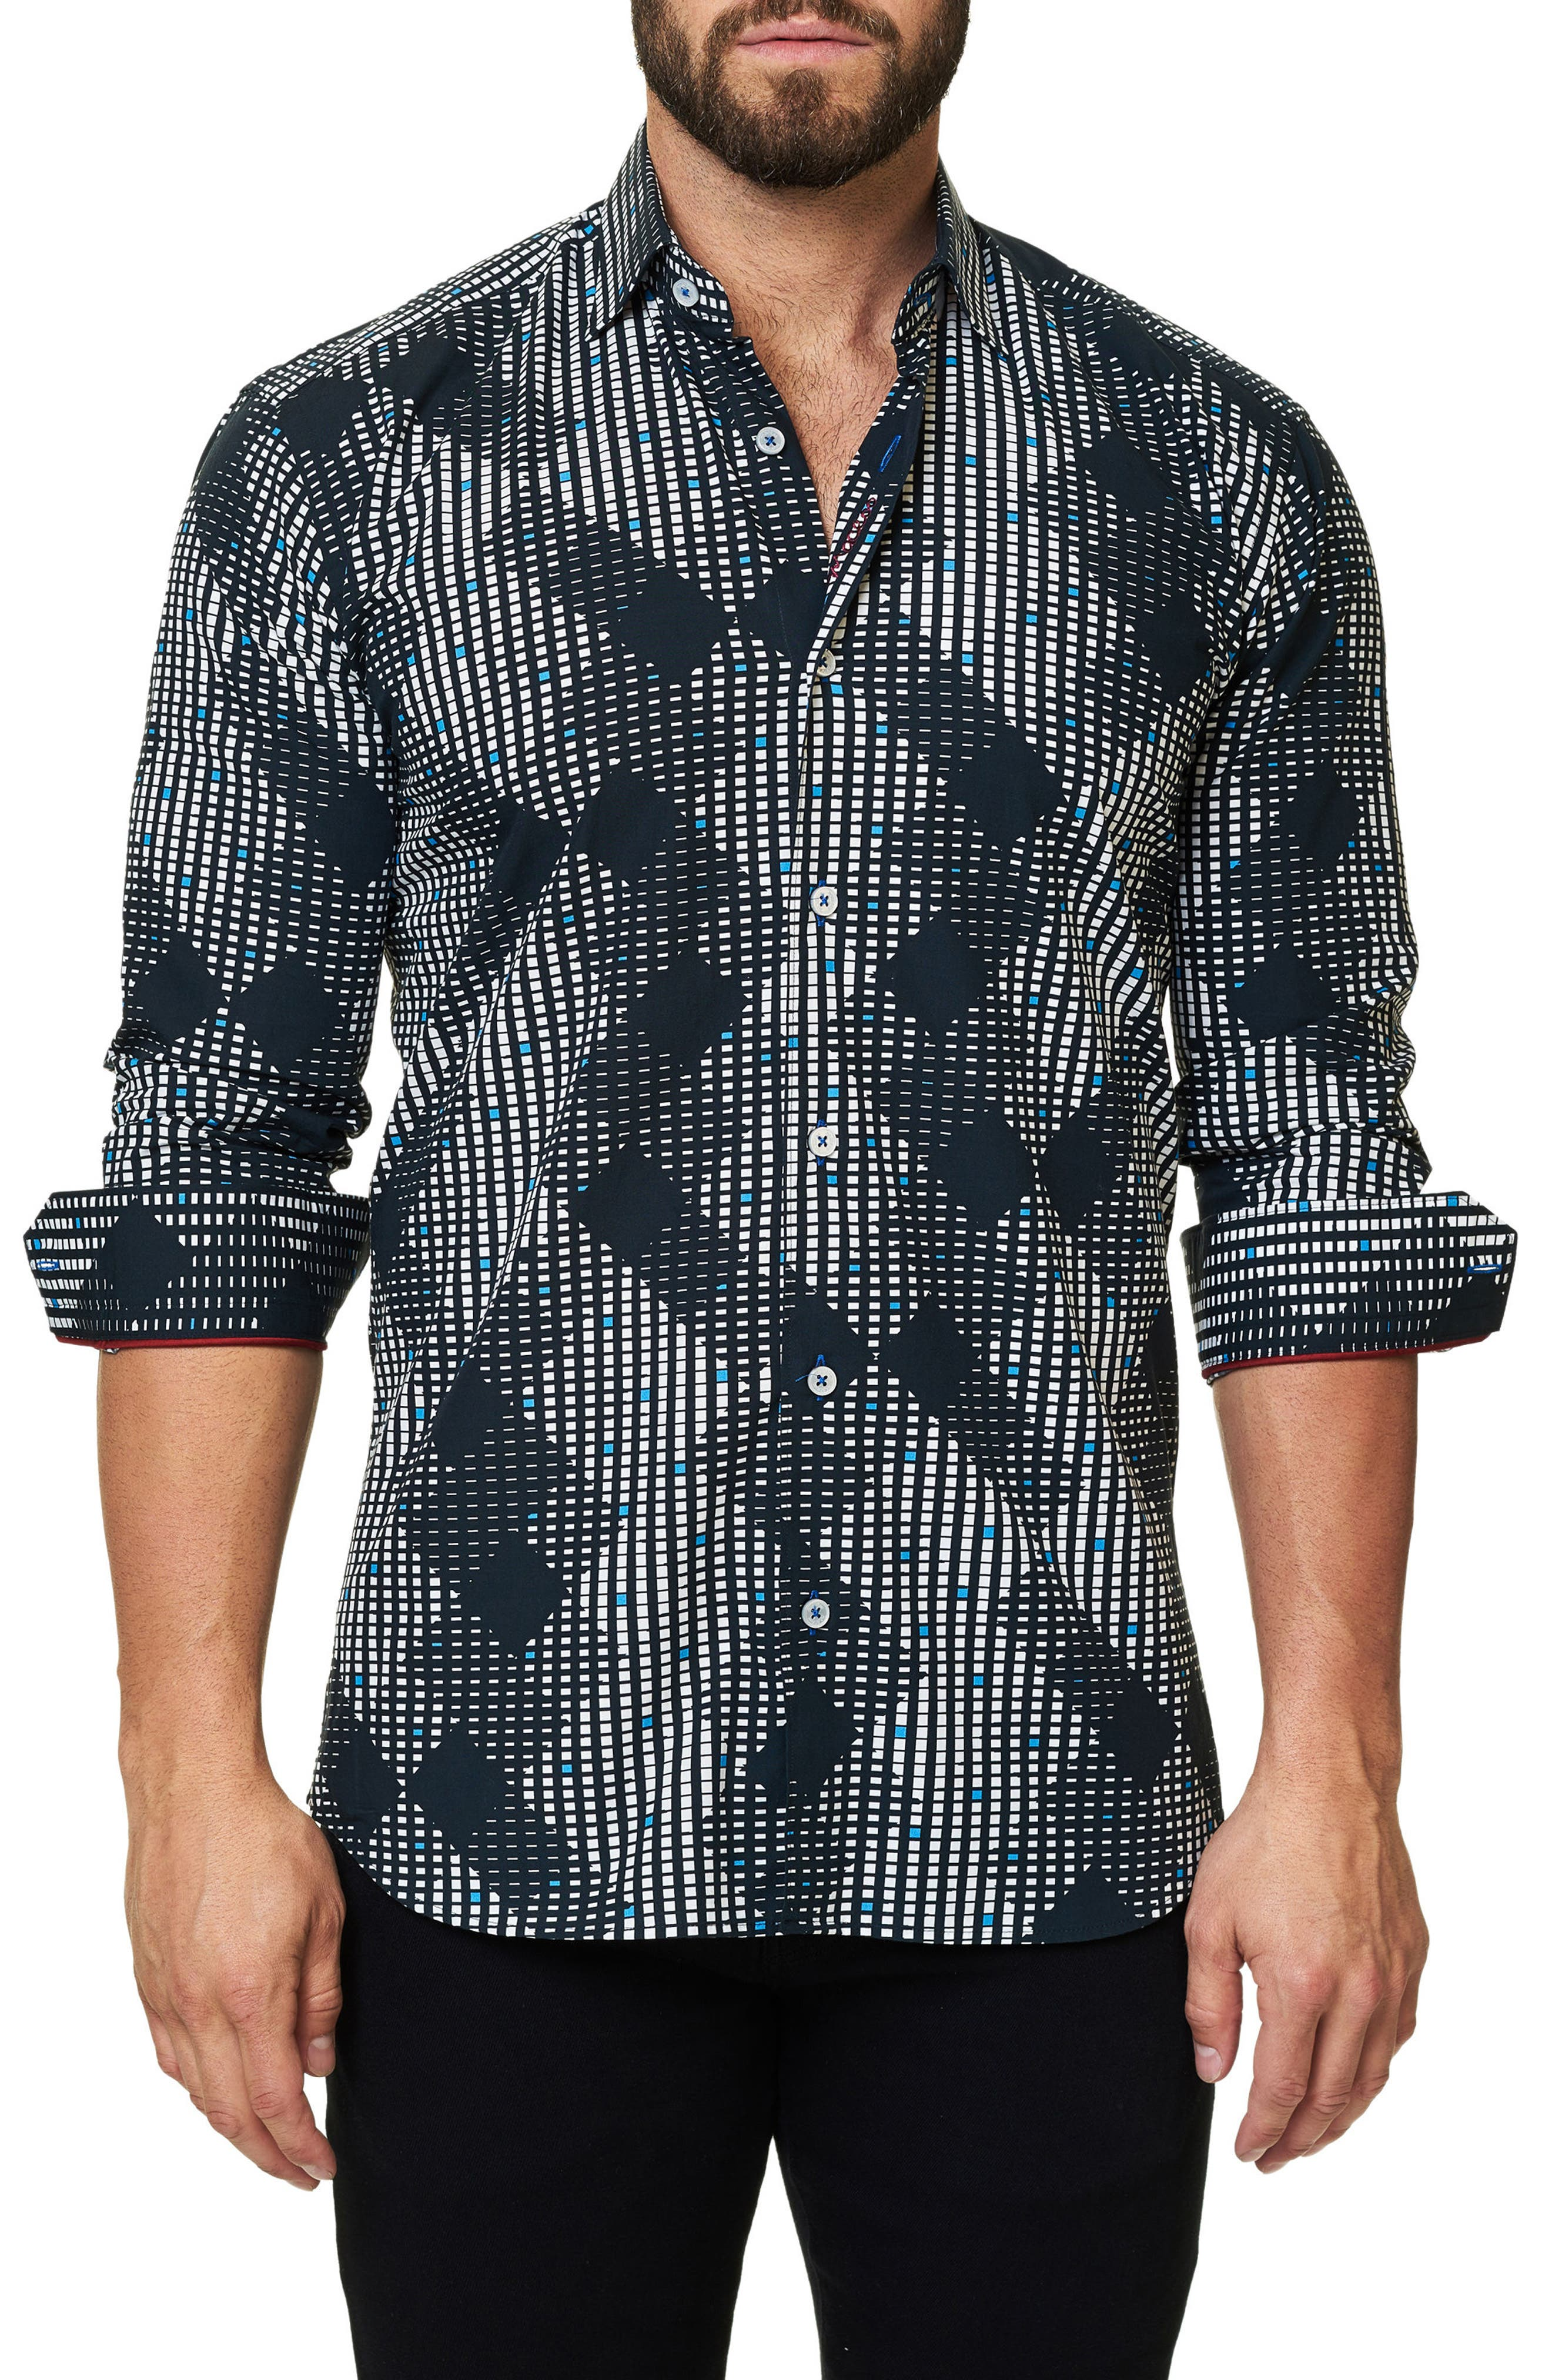 Alternate Image 1 Selected - Maceoo Trim Fit Print Sport Shirt